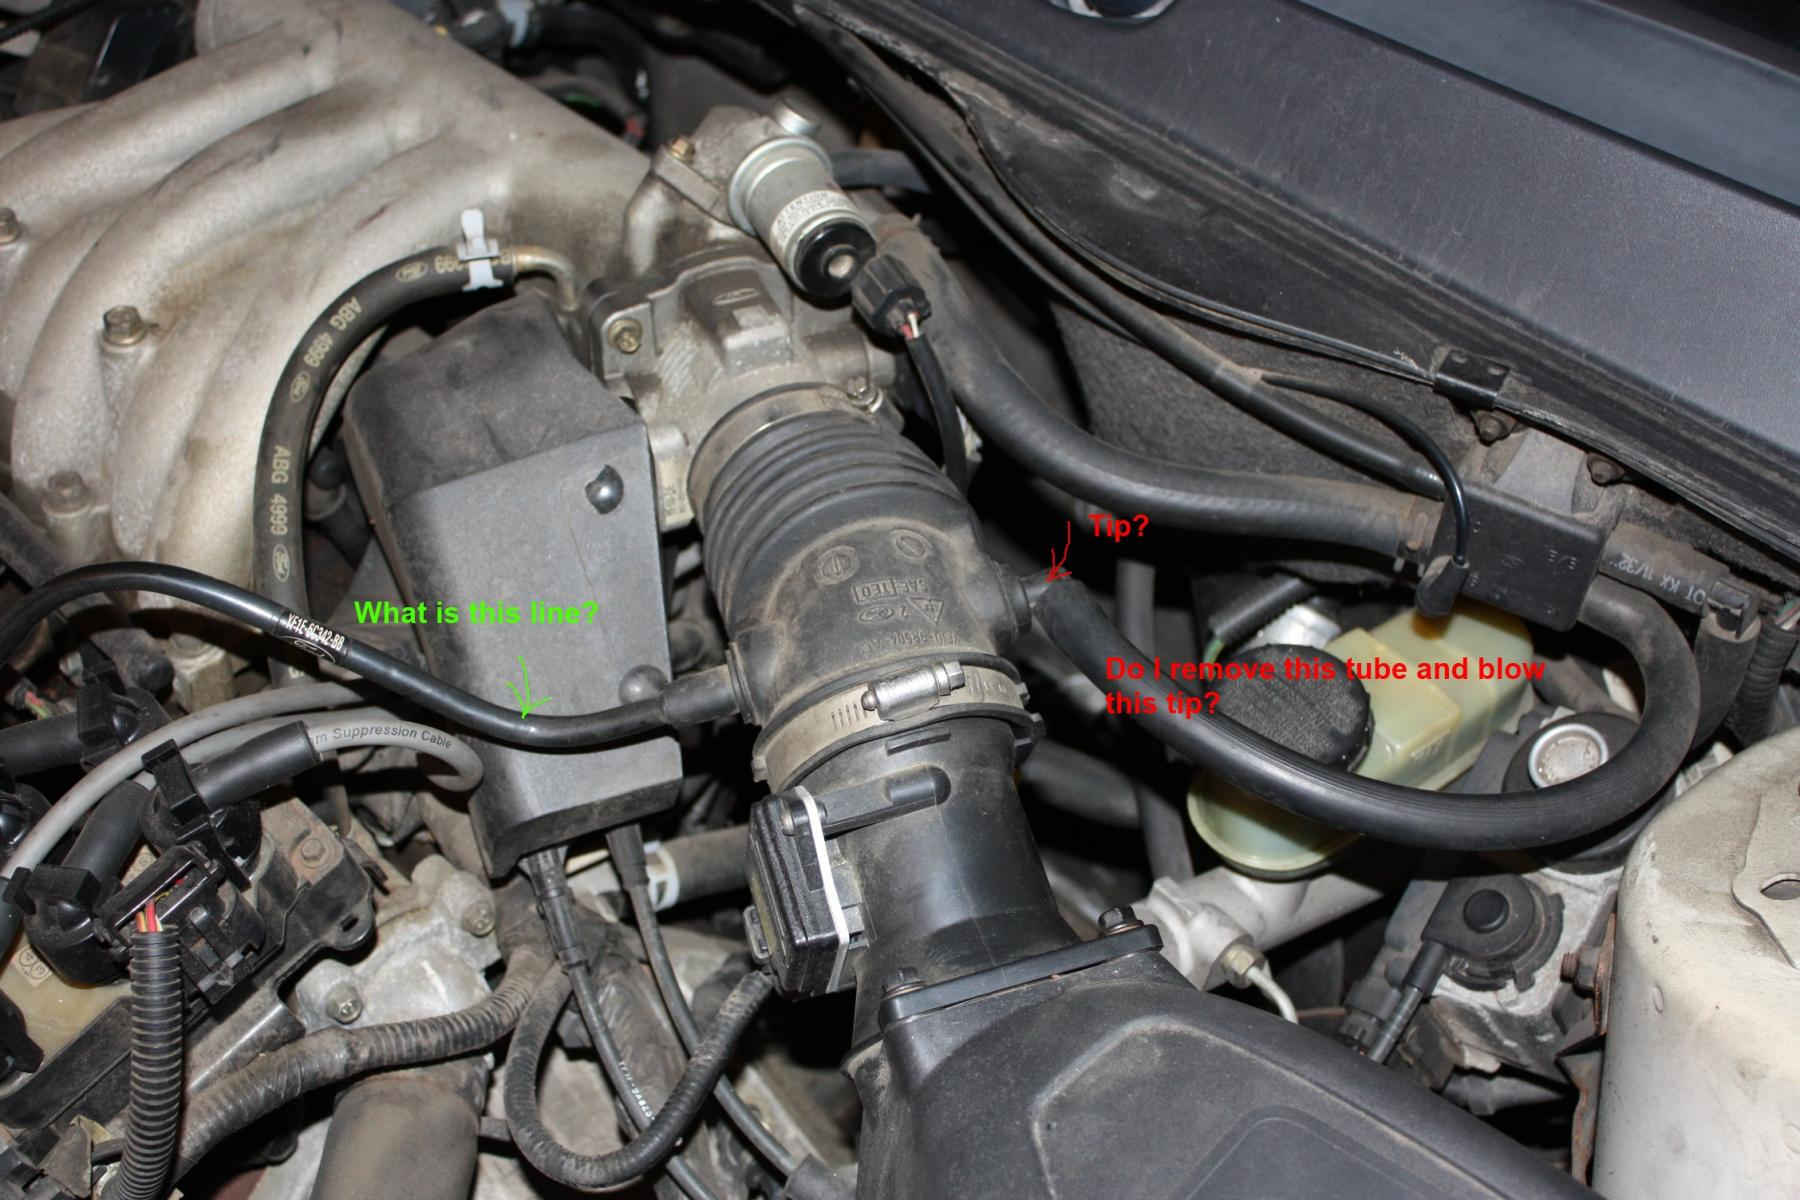 2004 ford taurus engine diagram wiring for a two way switch how to perform vacuum leak test with smoke - car club of america : forum